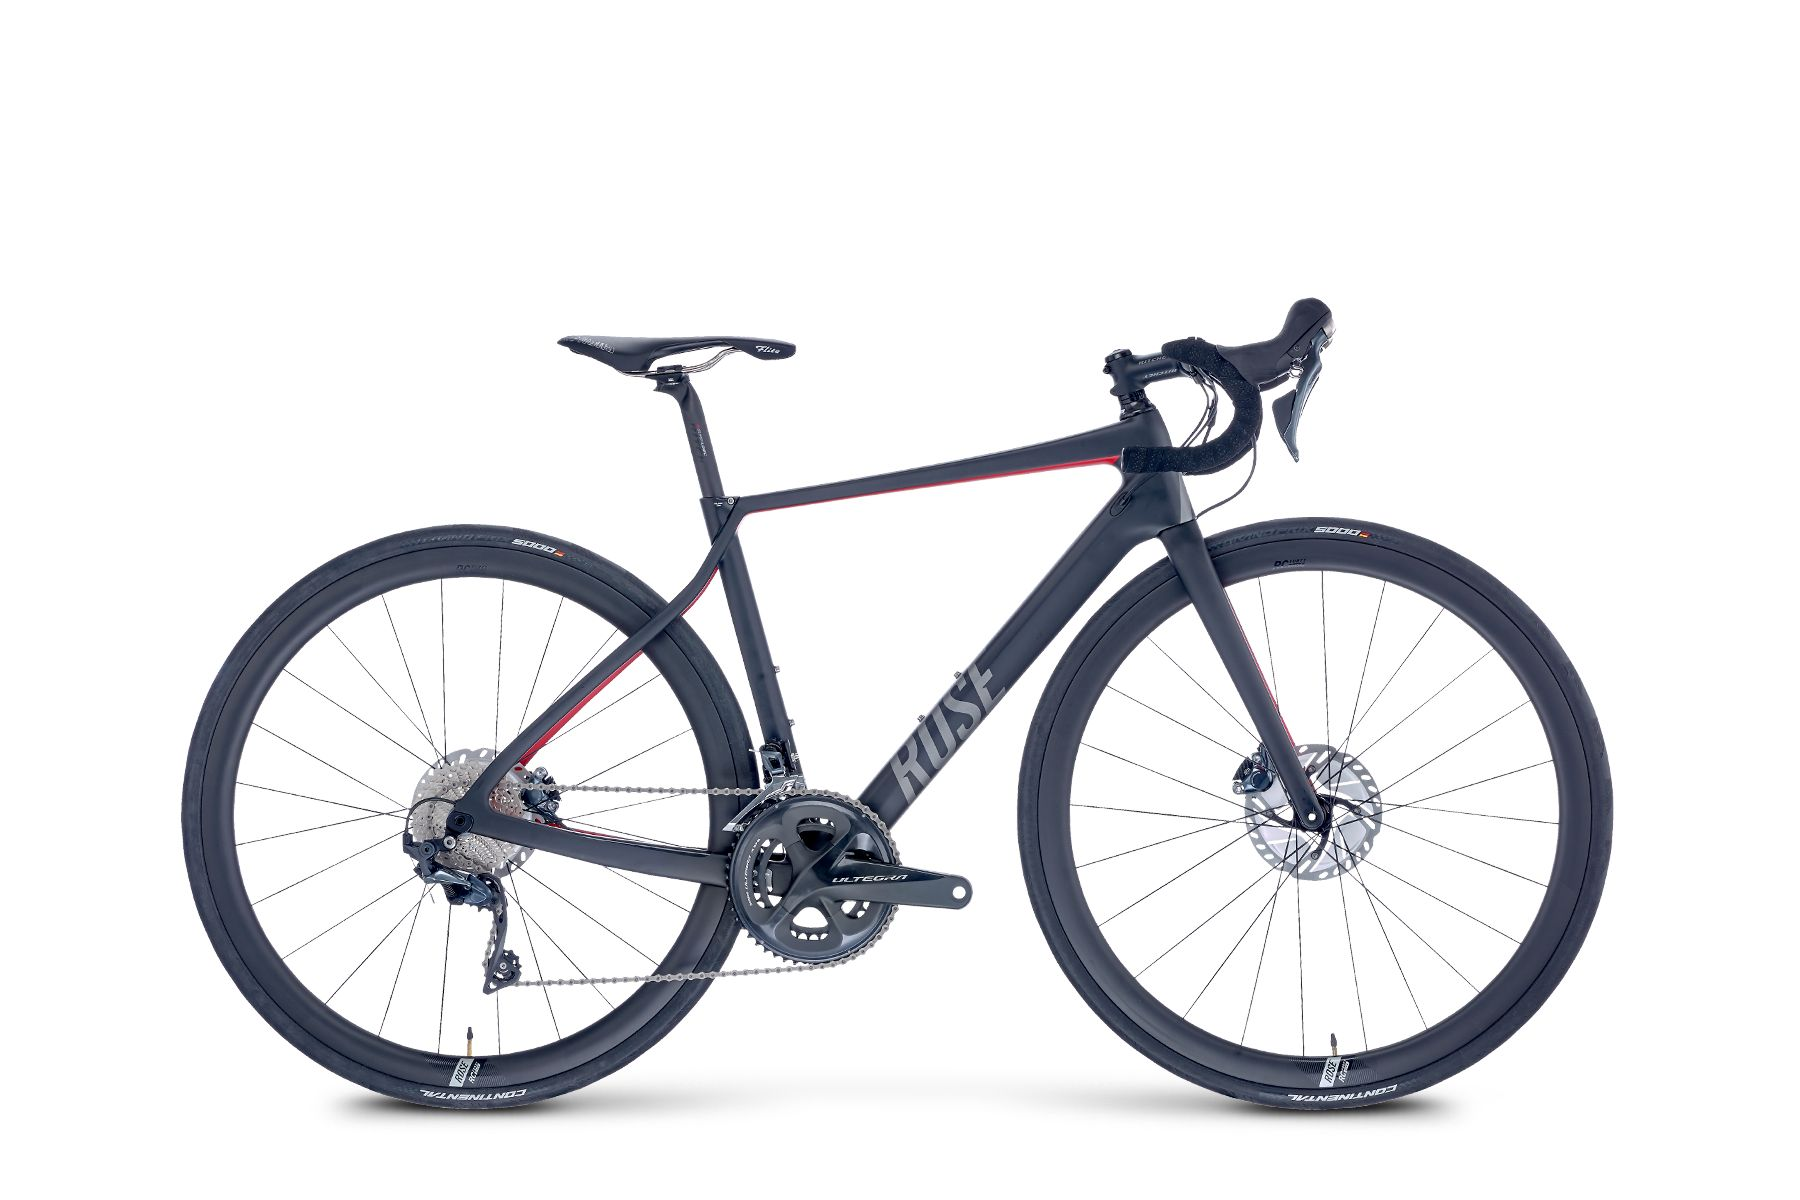 TEAM GF SIX DISC ULTEGRA Ex Demo Bike Size: 51cm